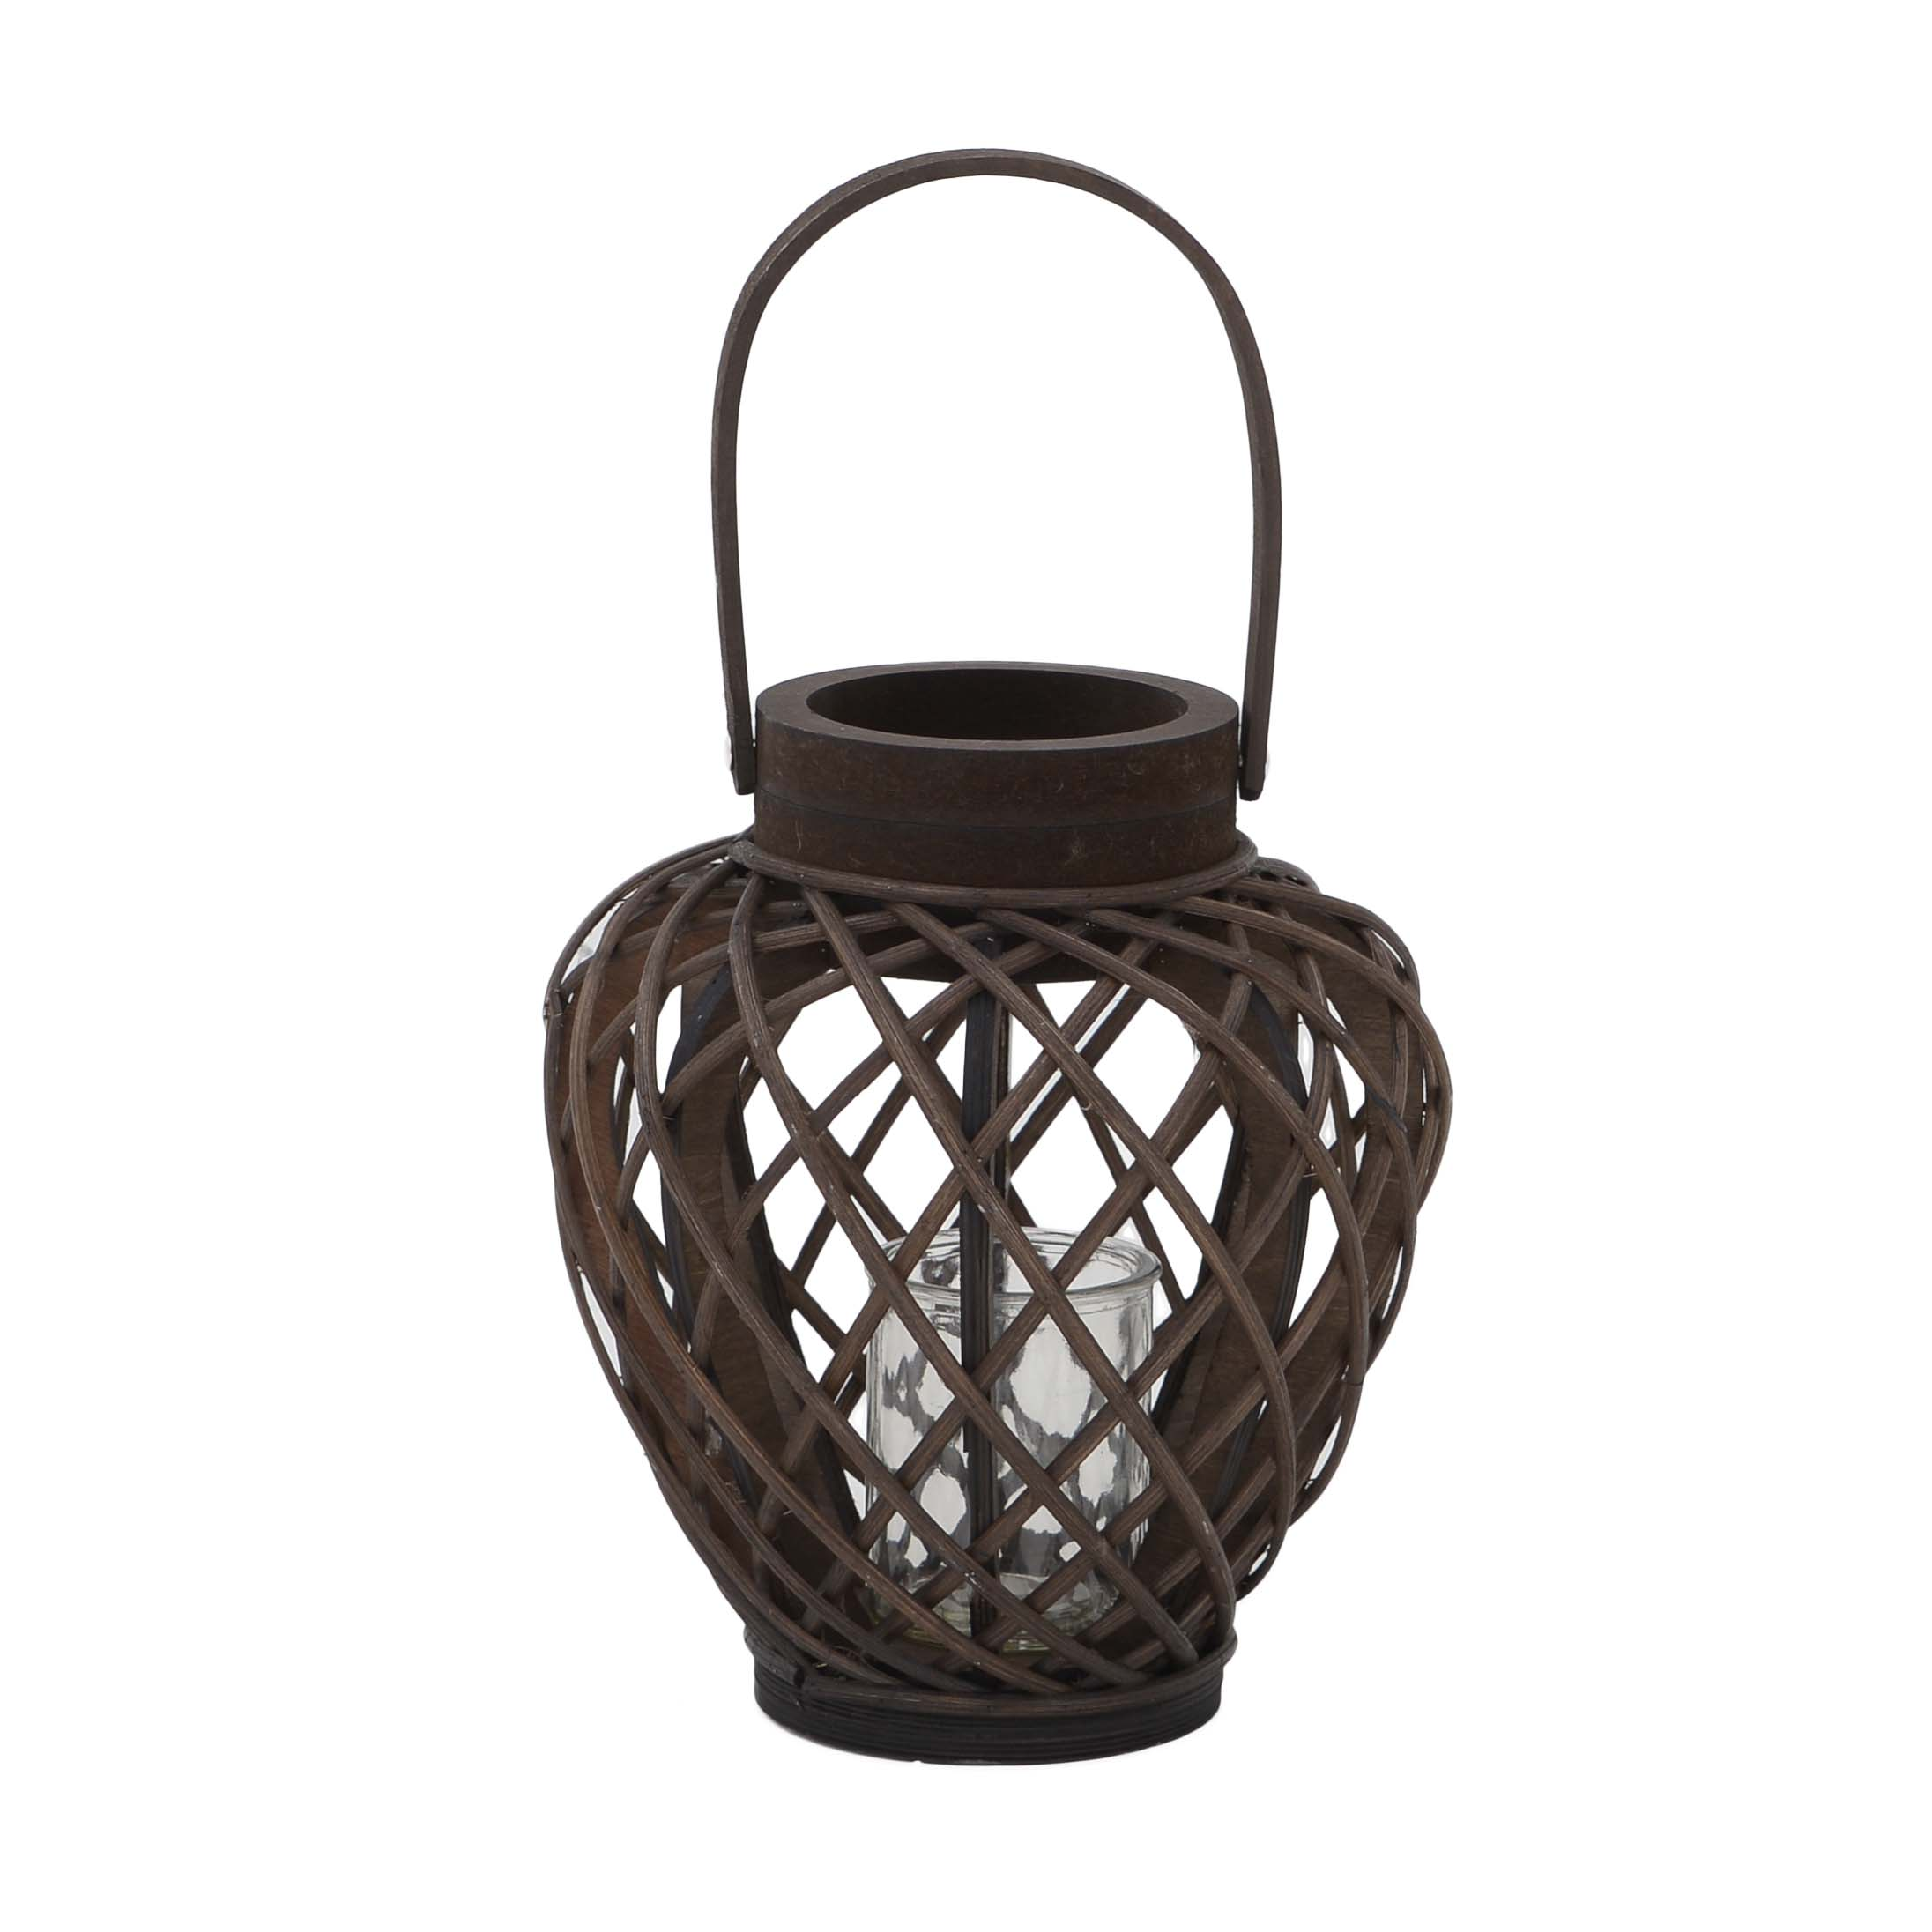 €32 WILLOW LANTERN IN BROWN COLOR 24X24X28/43